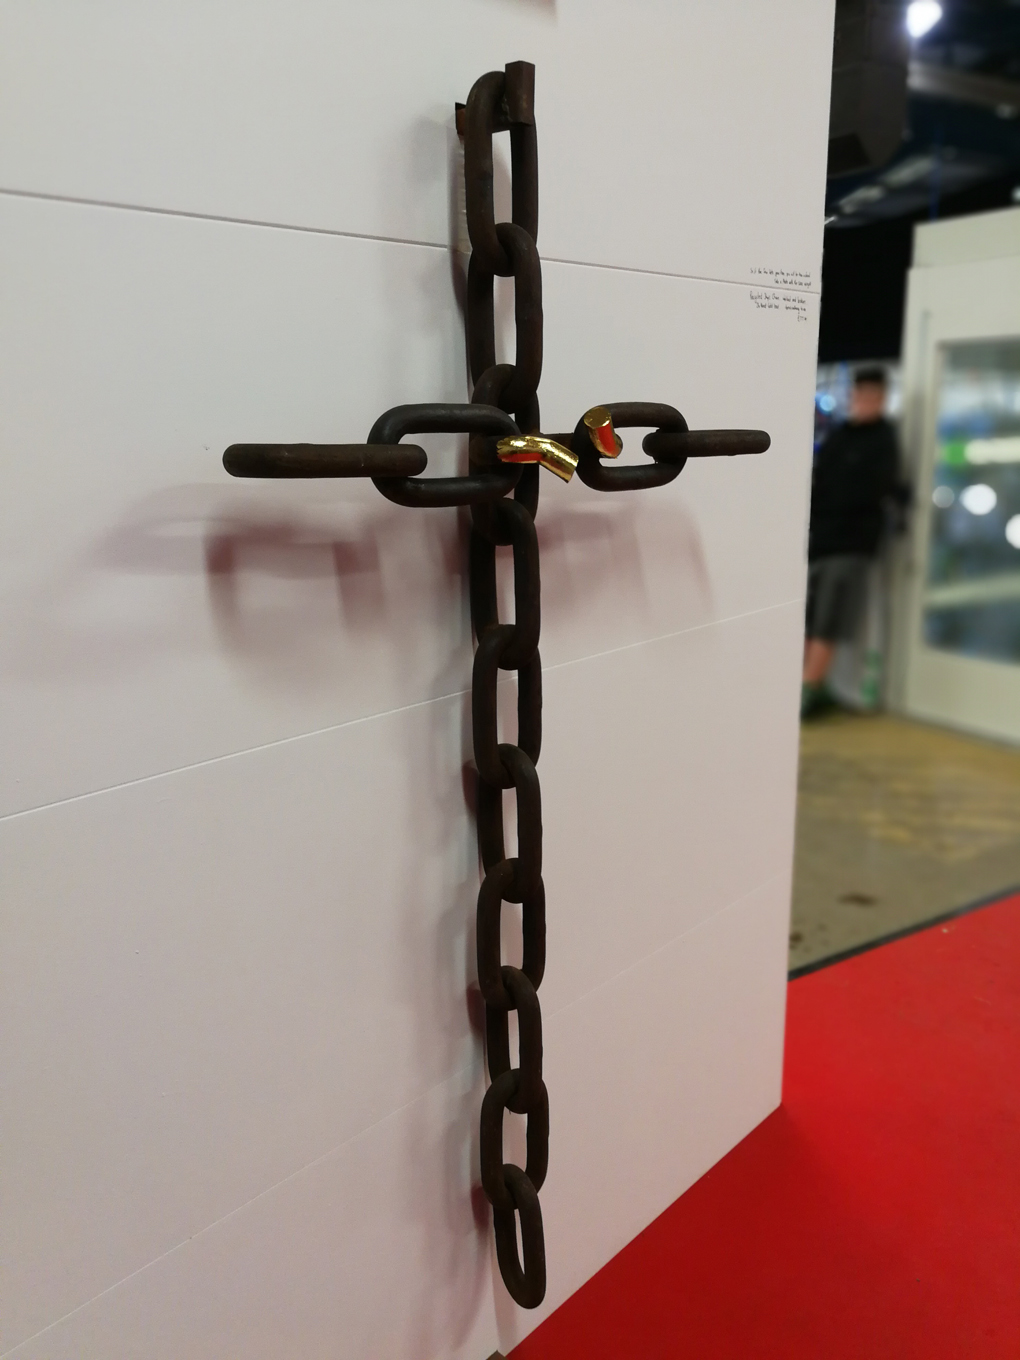 chain links forming a cross with the central one broken